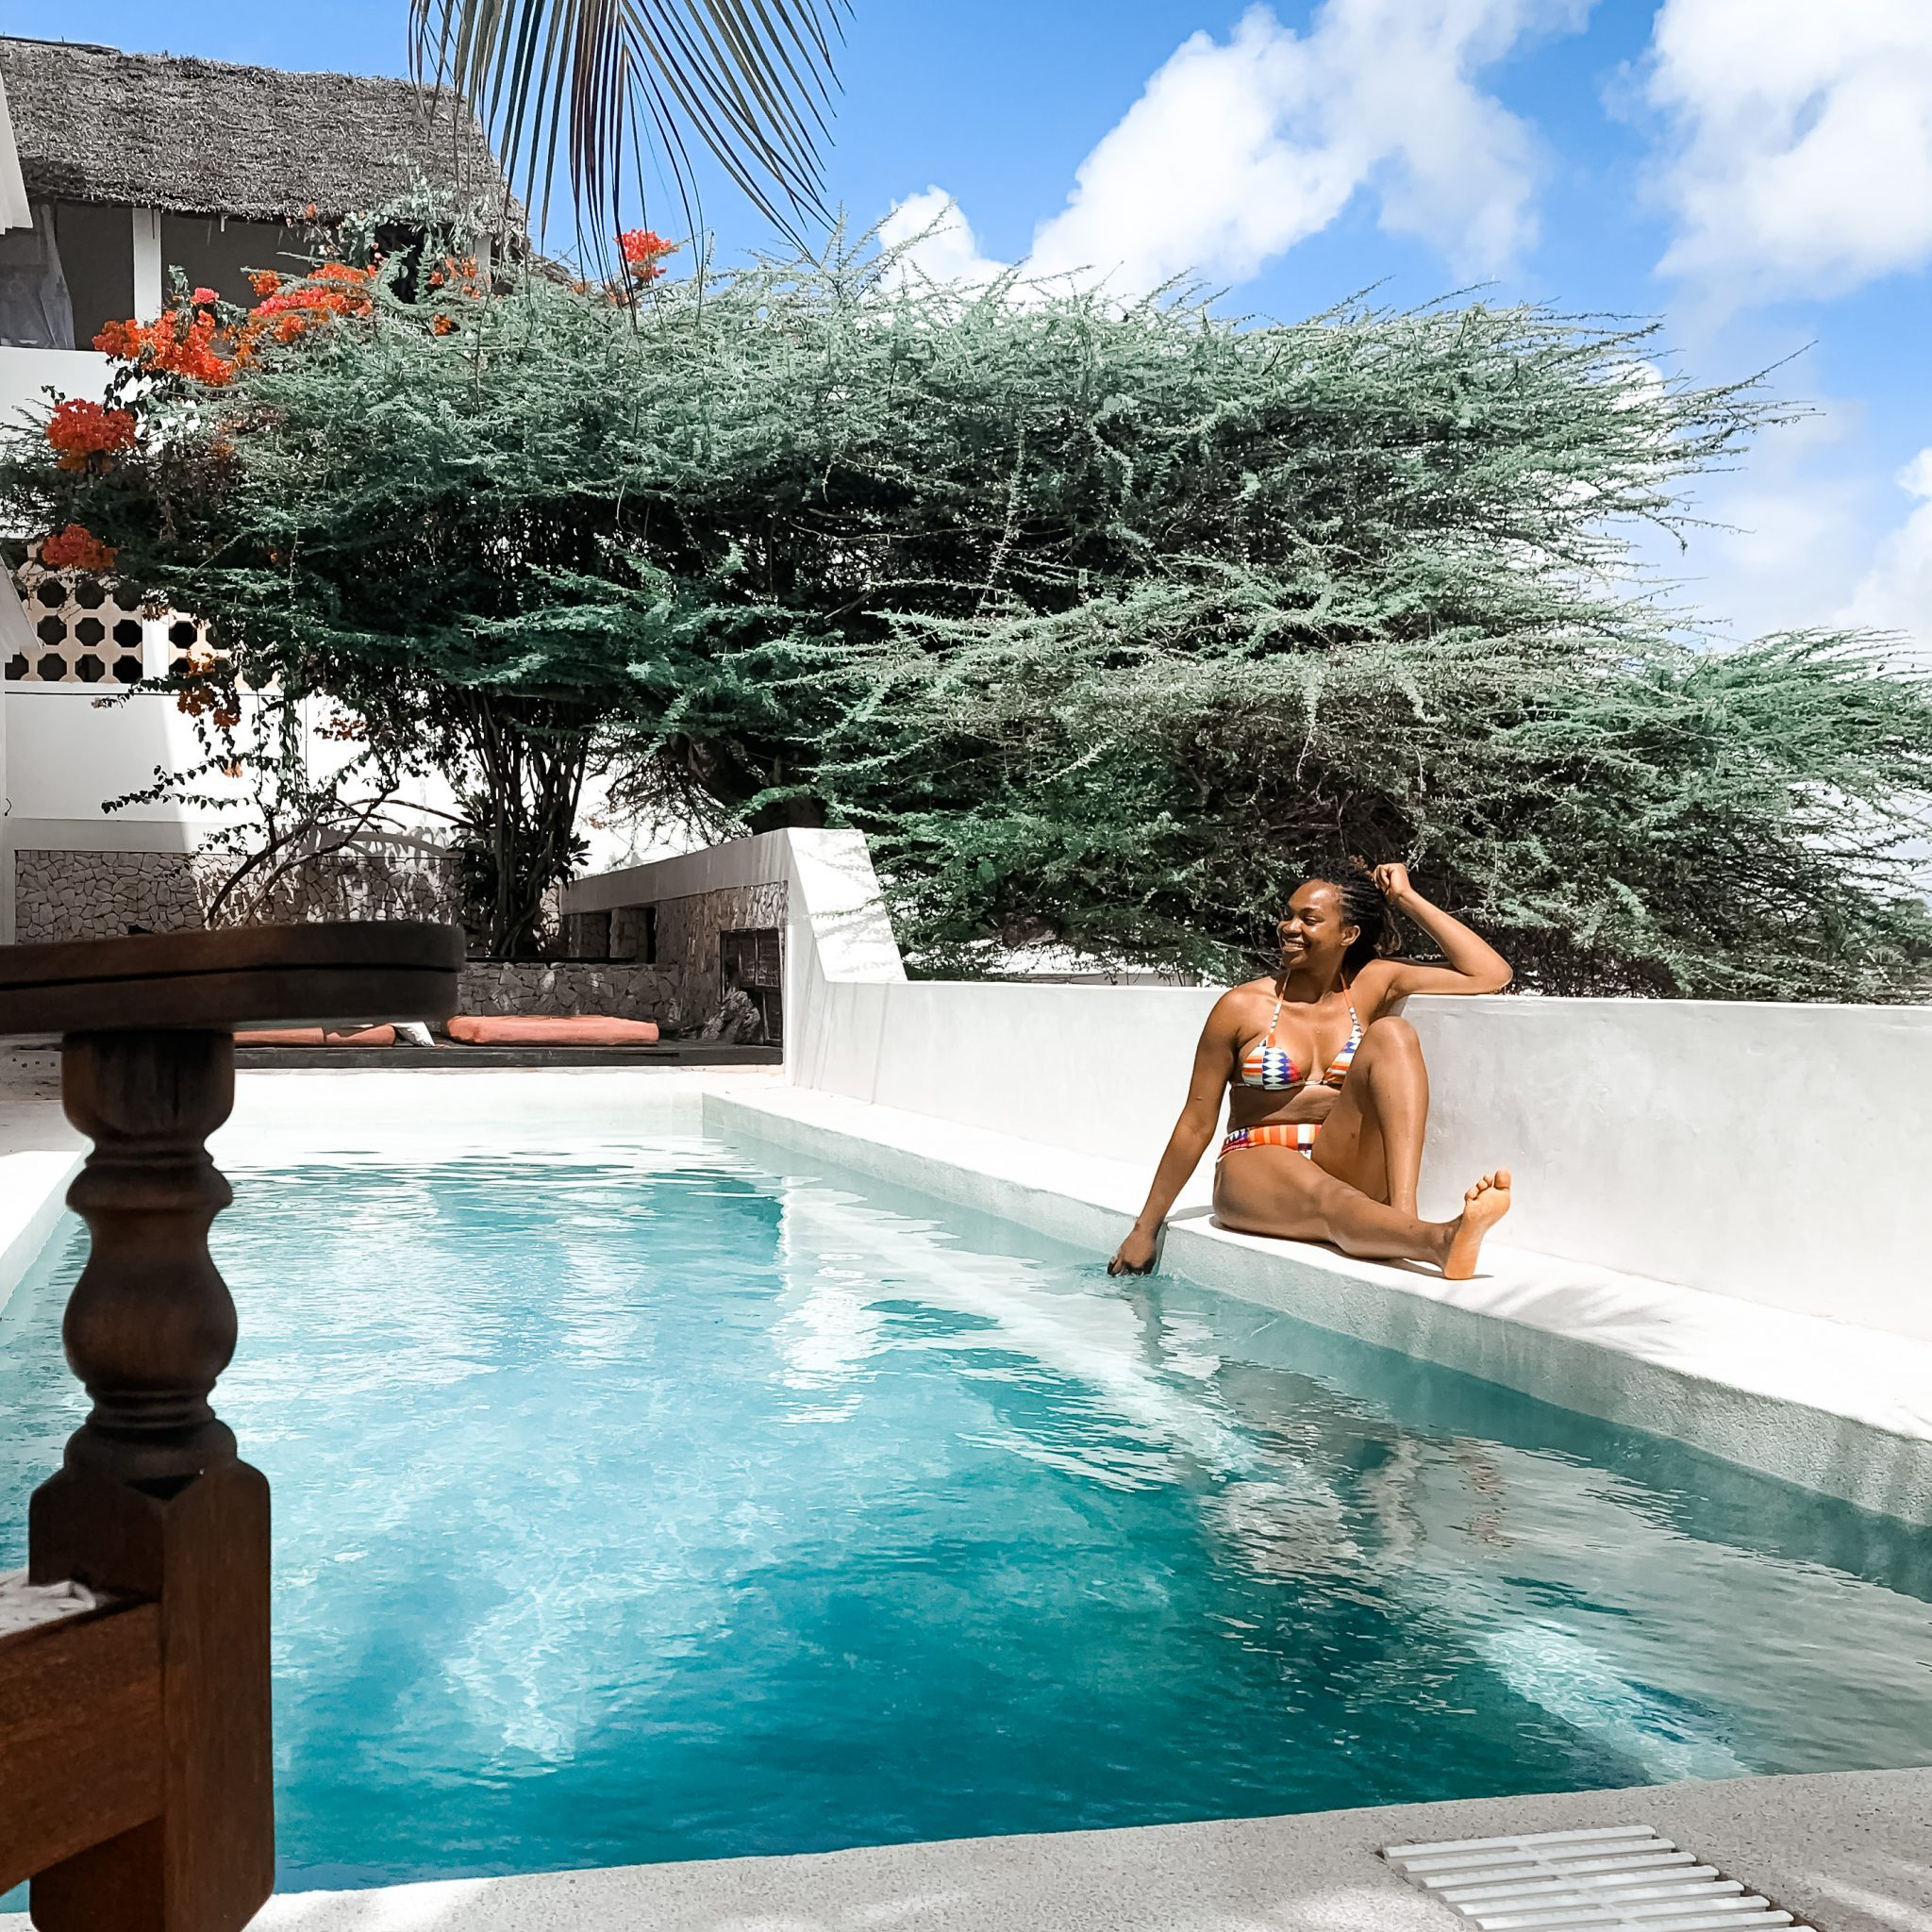 Ijeoma Kola posing poolside in a bikini - 2021 Travel Destinations Buck List Blog